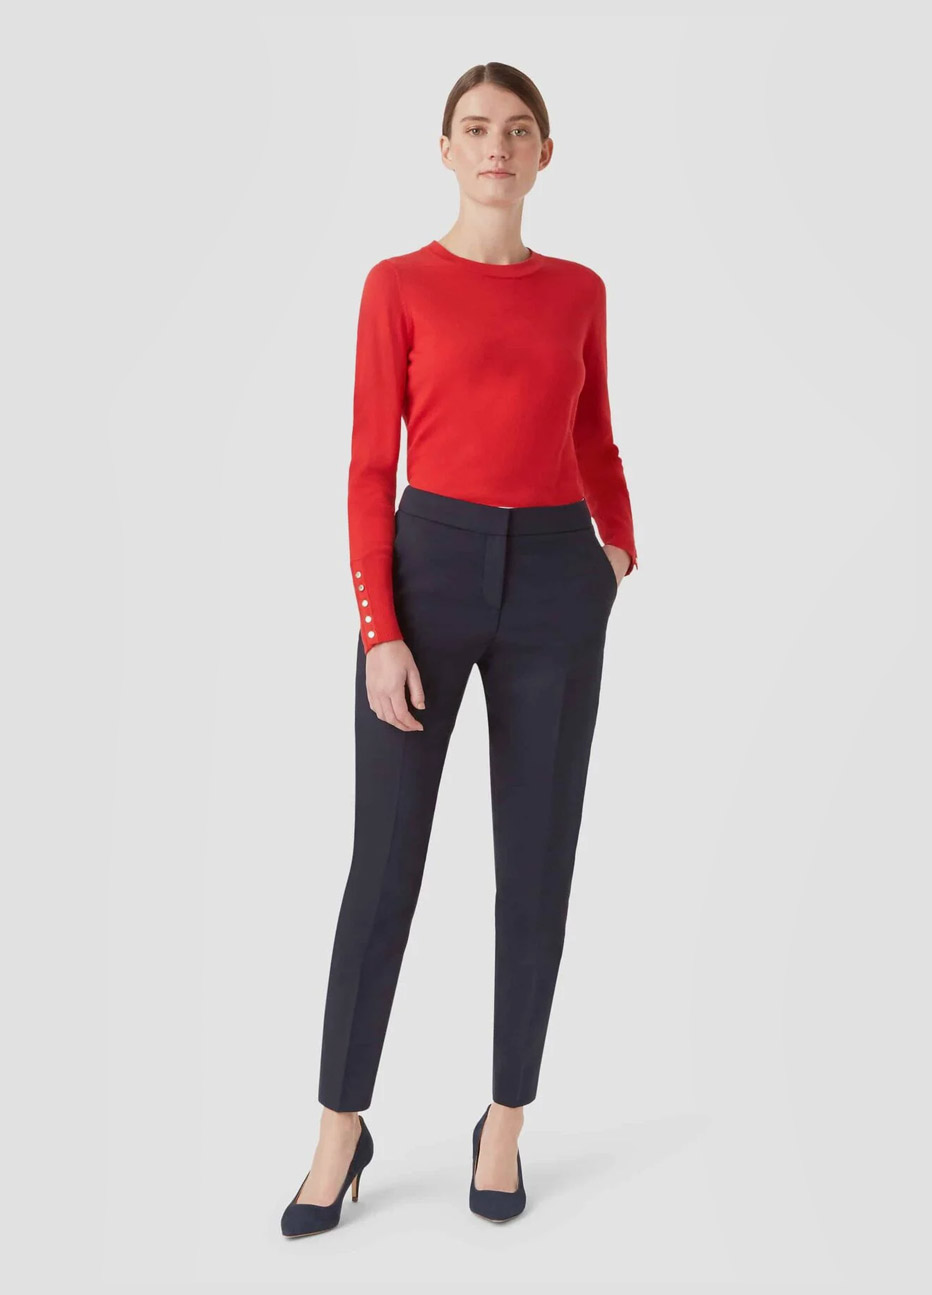 Red knitted jumper with buttons on sleeves paired with black slim fit trousers and black court shoes by Hobbs.